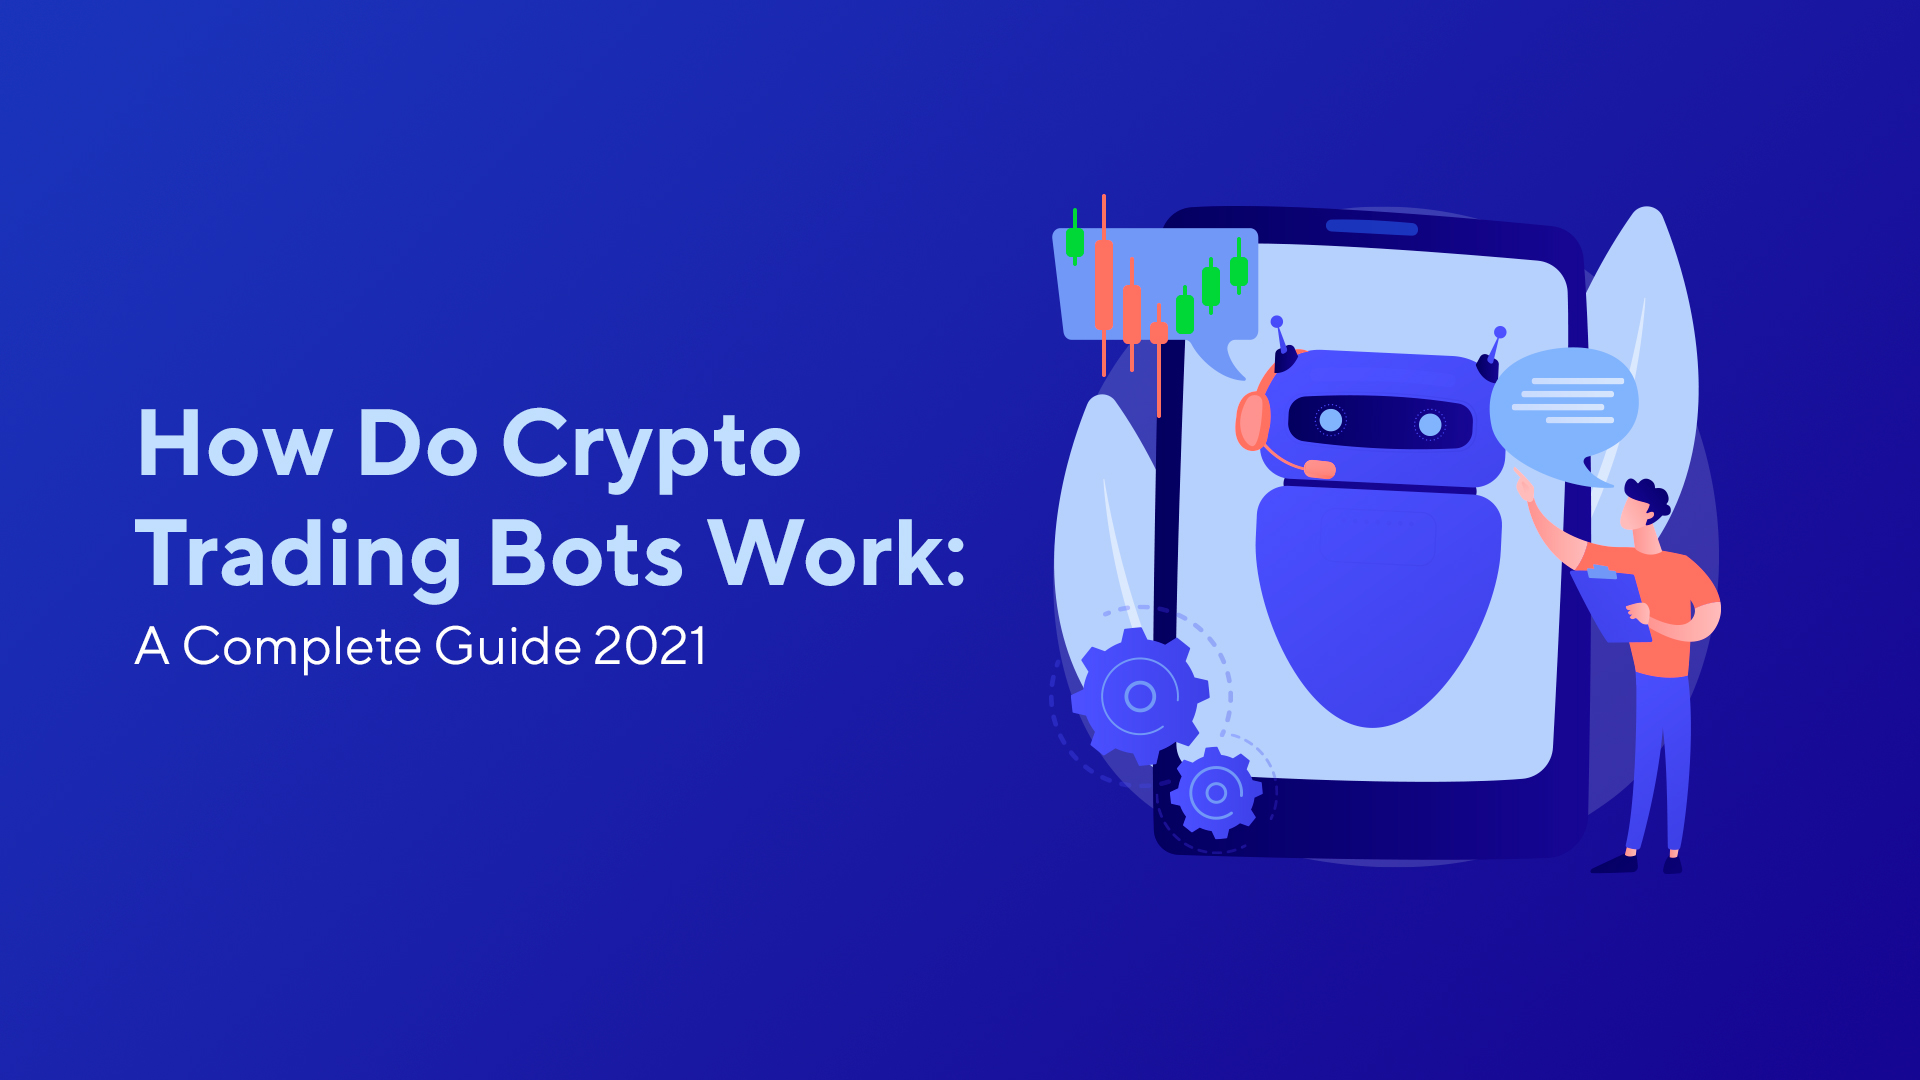 How Do Crypto Trading Bots Work: A Complete Guide 2021